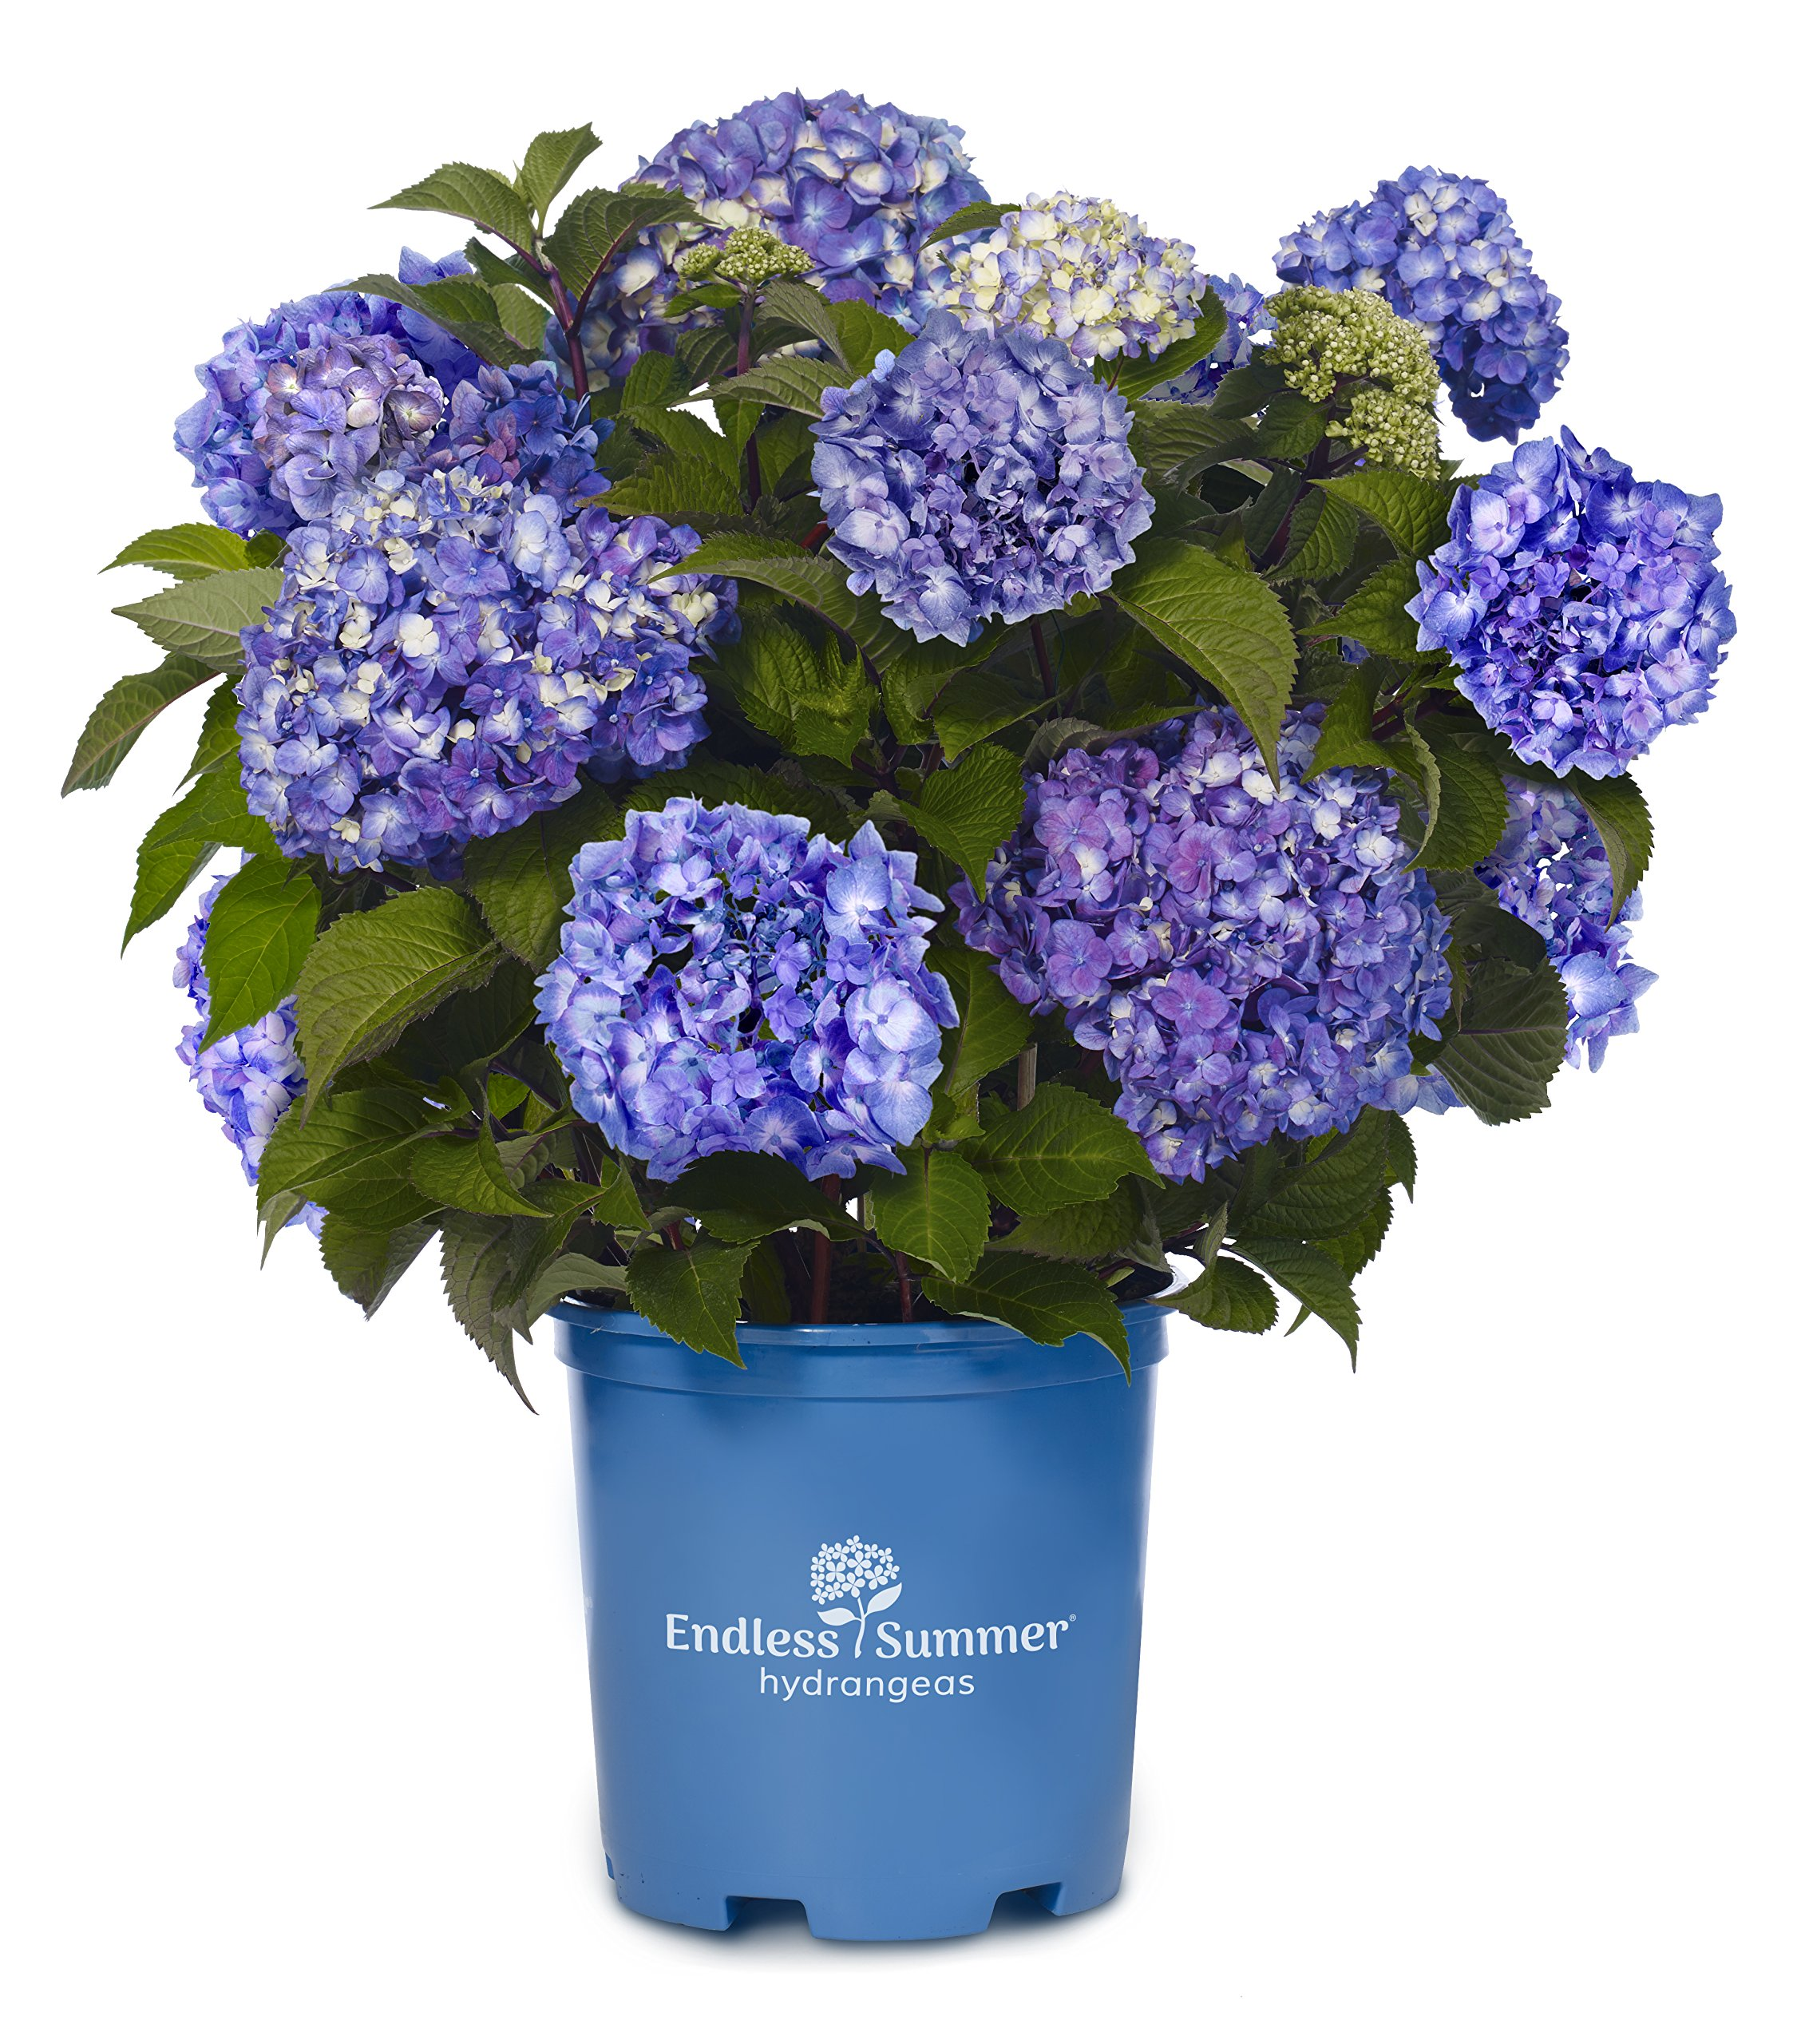 Endless Summer Collection - Hydrangea mac. Endless Summer BloomStruck (Reblooming Hydrangea) Shrub, RB purple, #3 - Size Container by Green Promise Farms